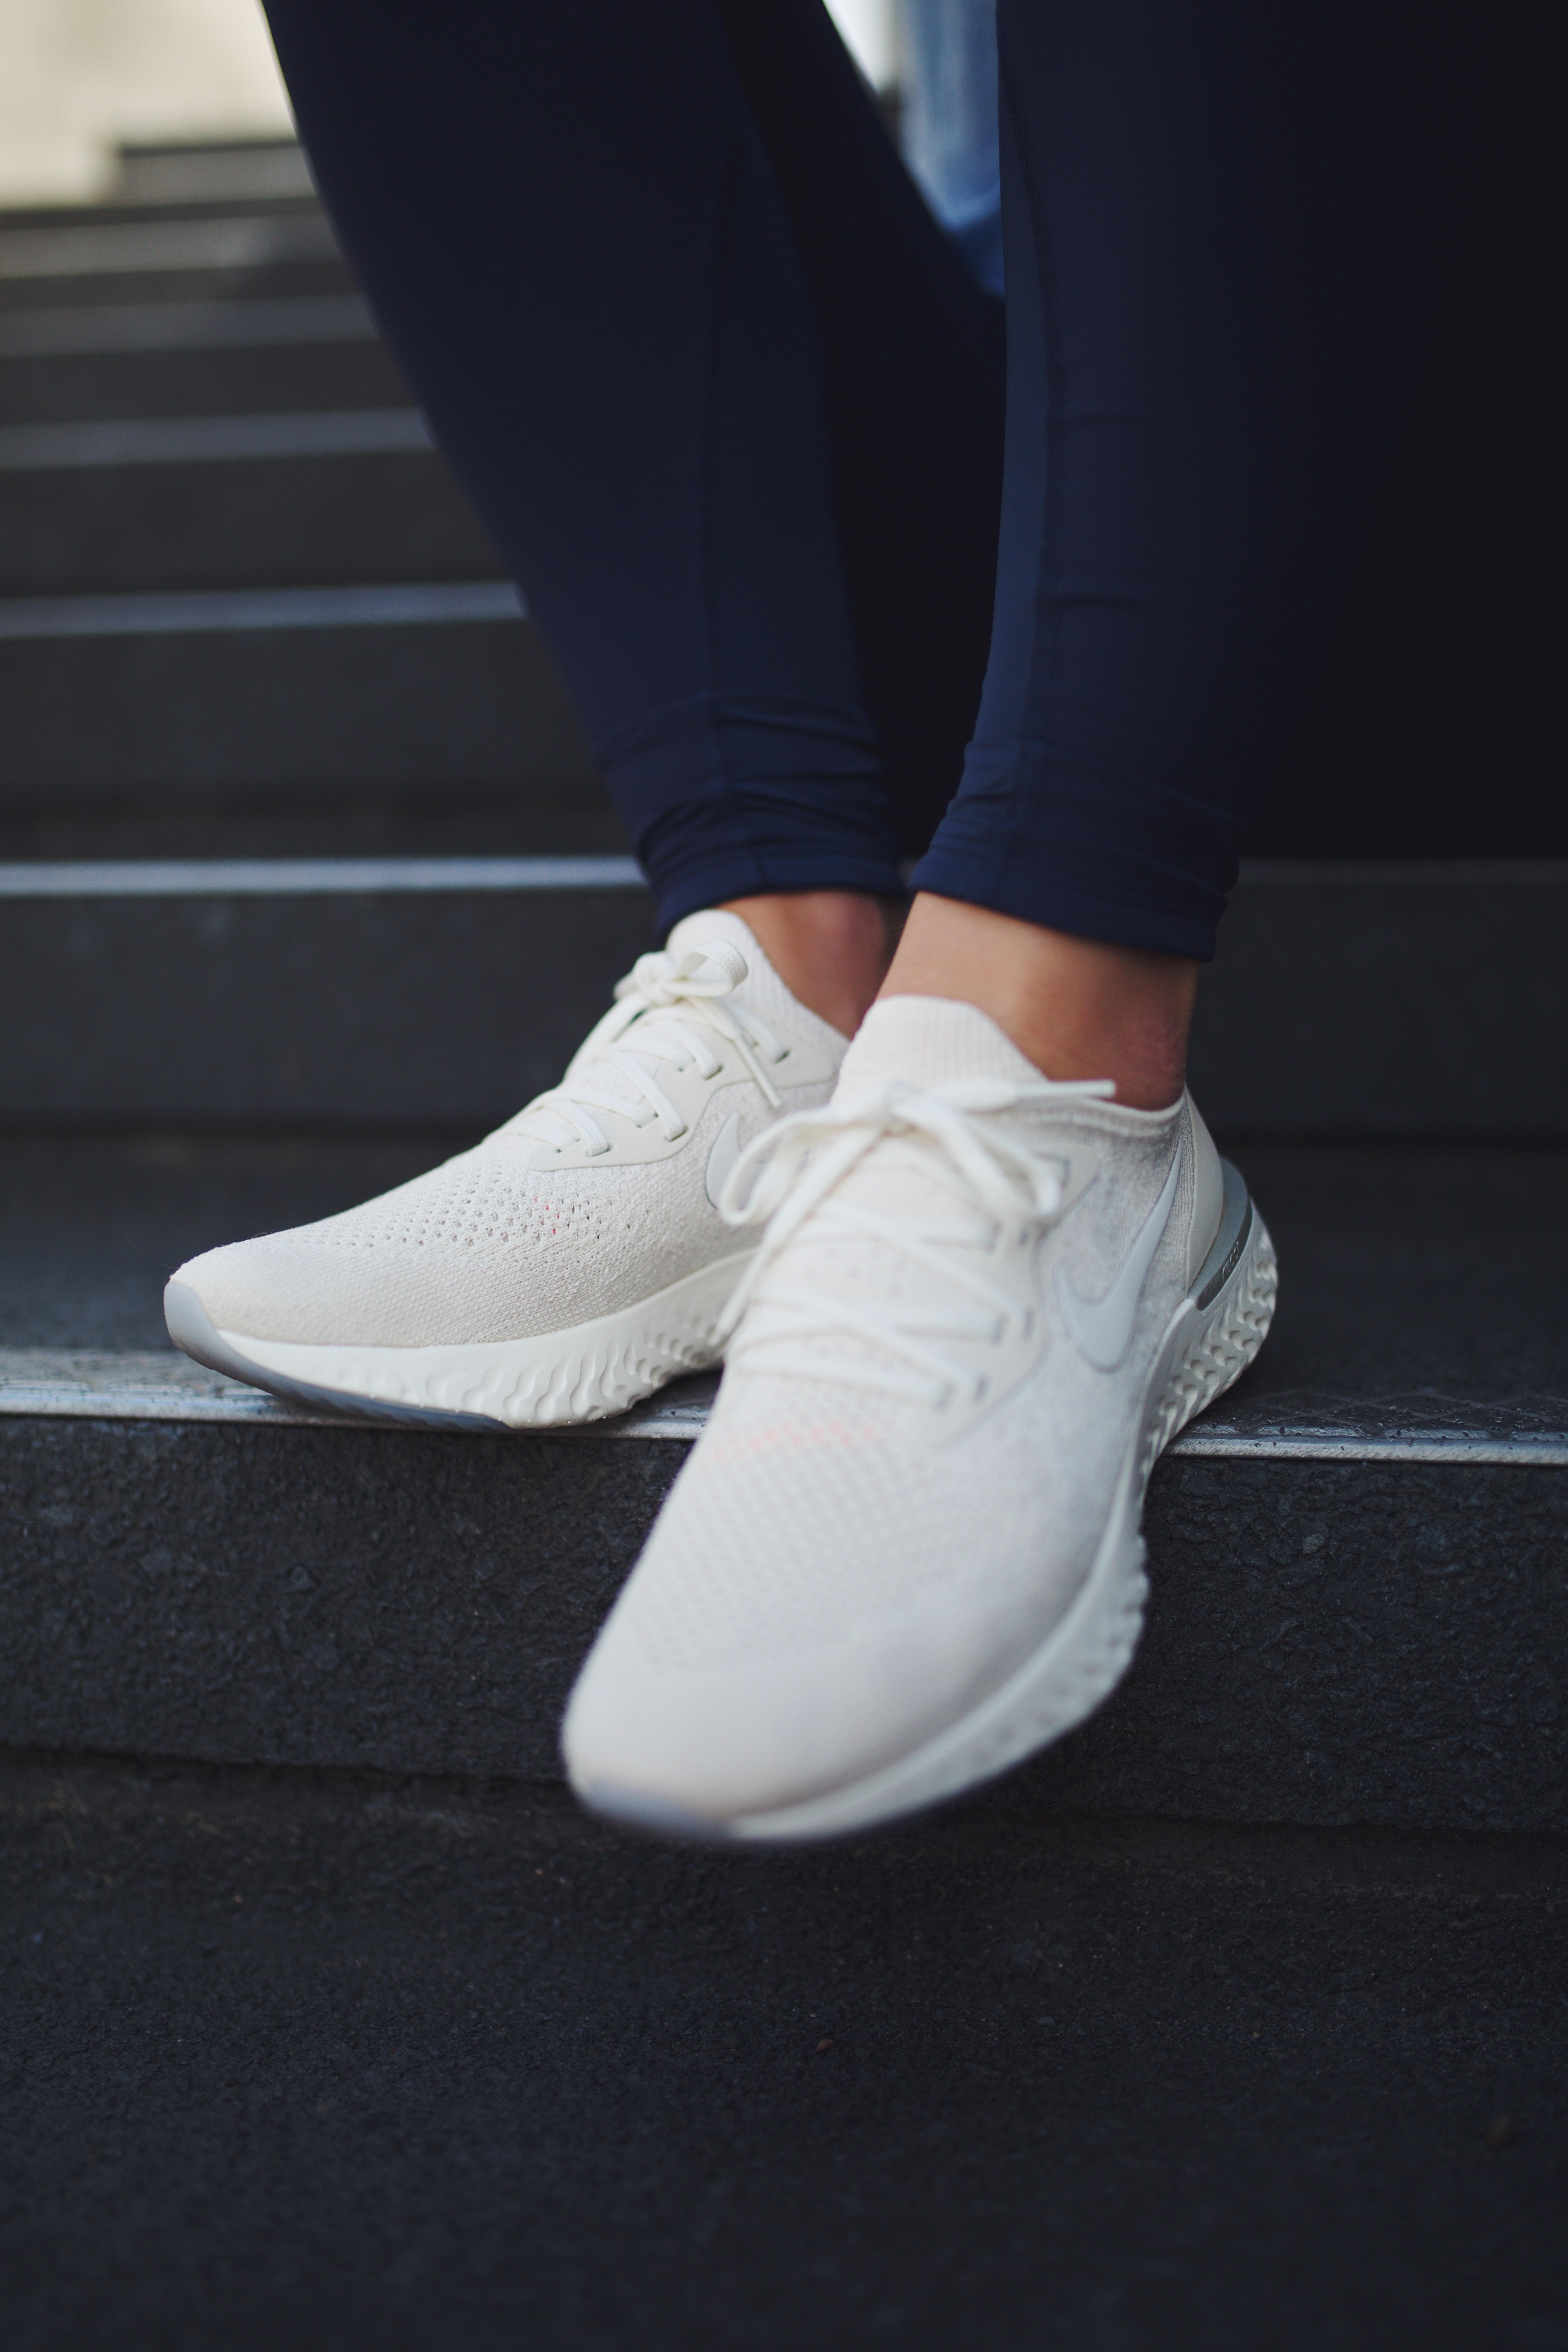 Nike Epic React trainers